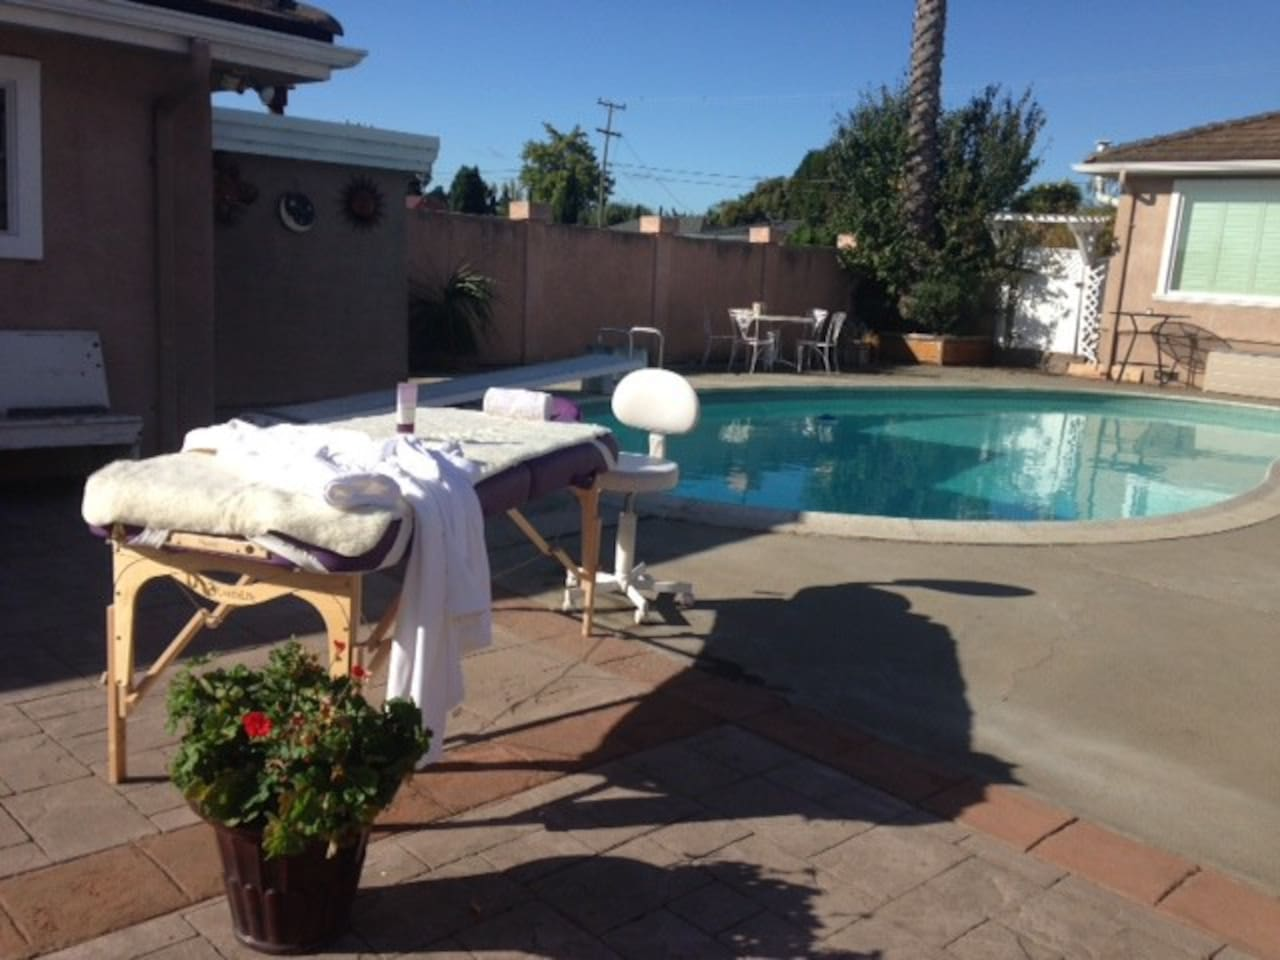 I run one of Napa's finest day spas...or I can do a facial or massage poolside here at the guest house for you!